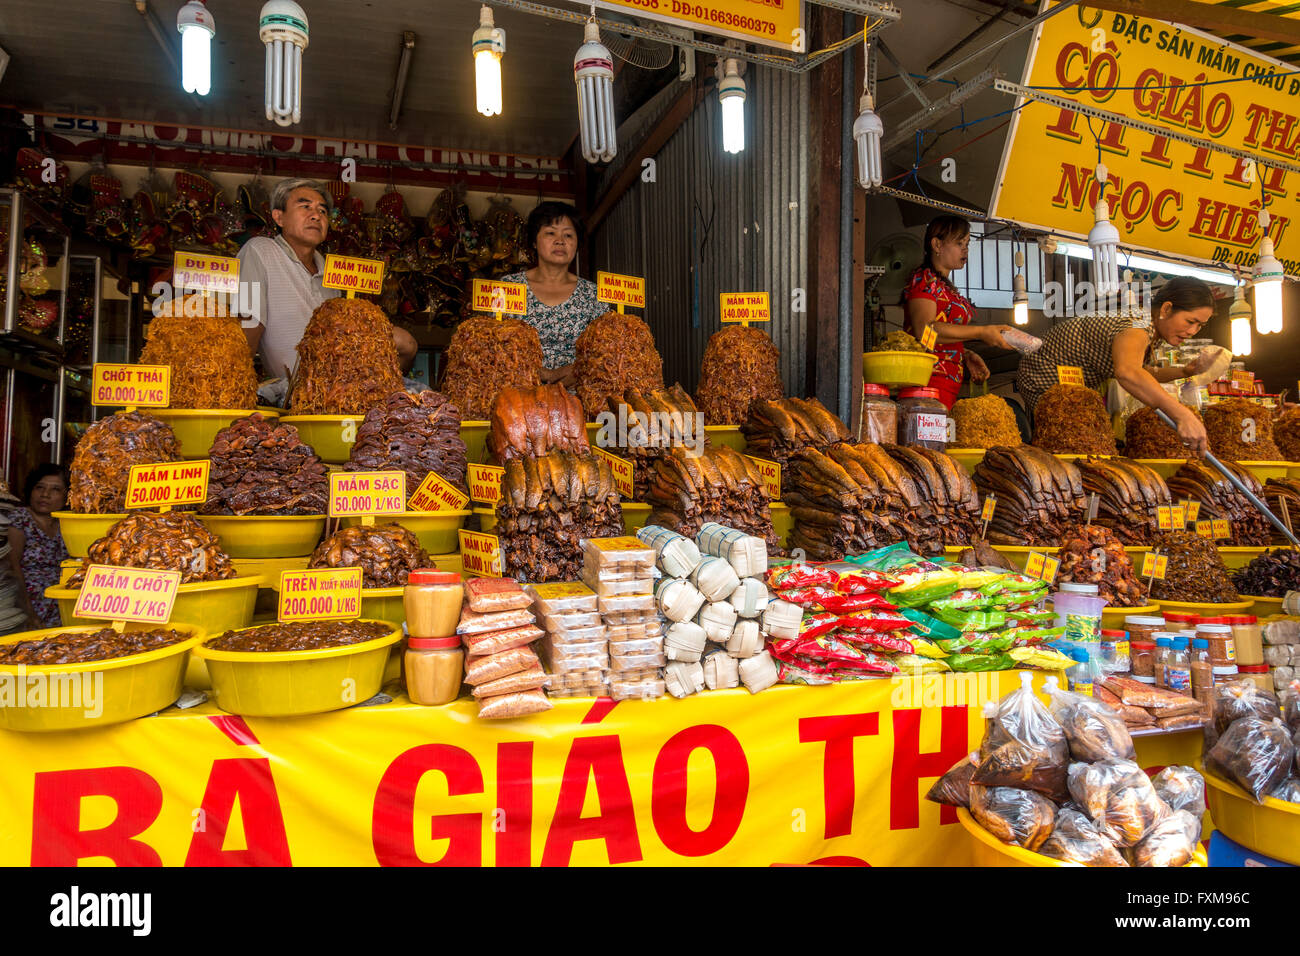 Dried meat and fish market stall on land at Chau Doc, Vietnam - Stock Image